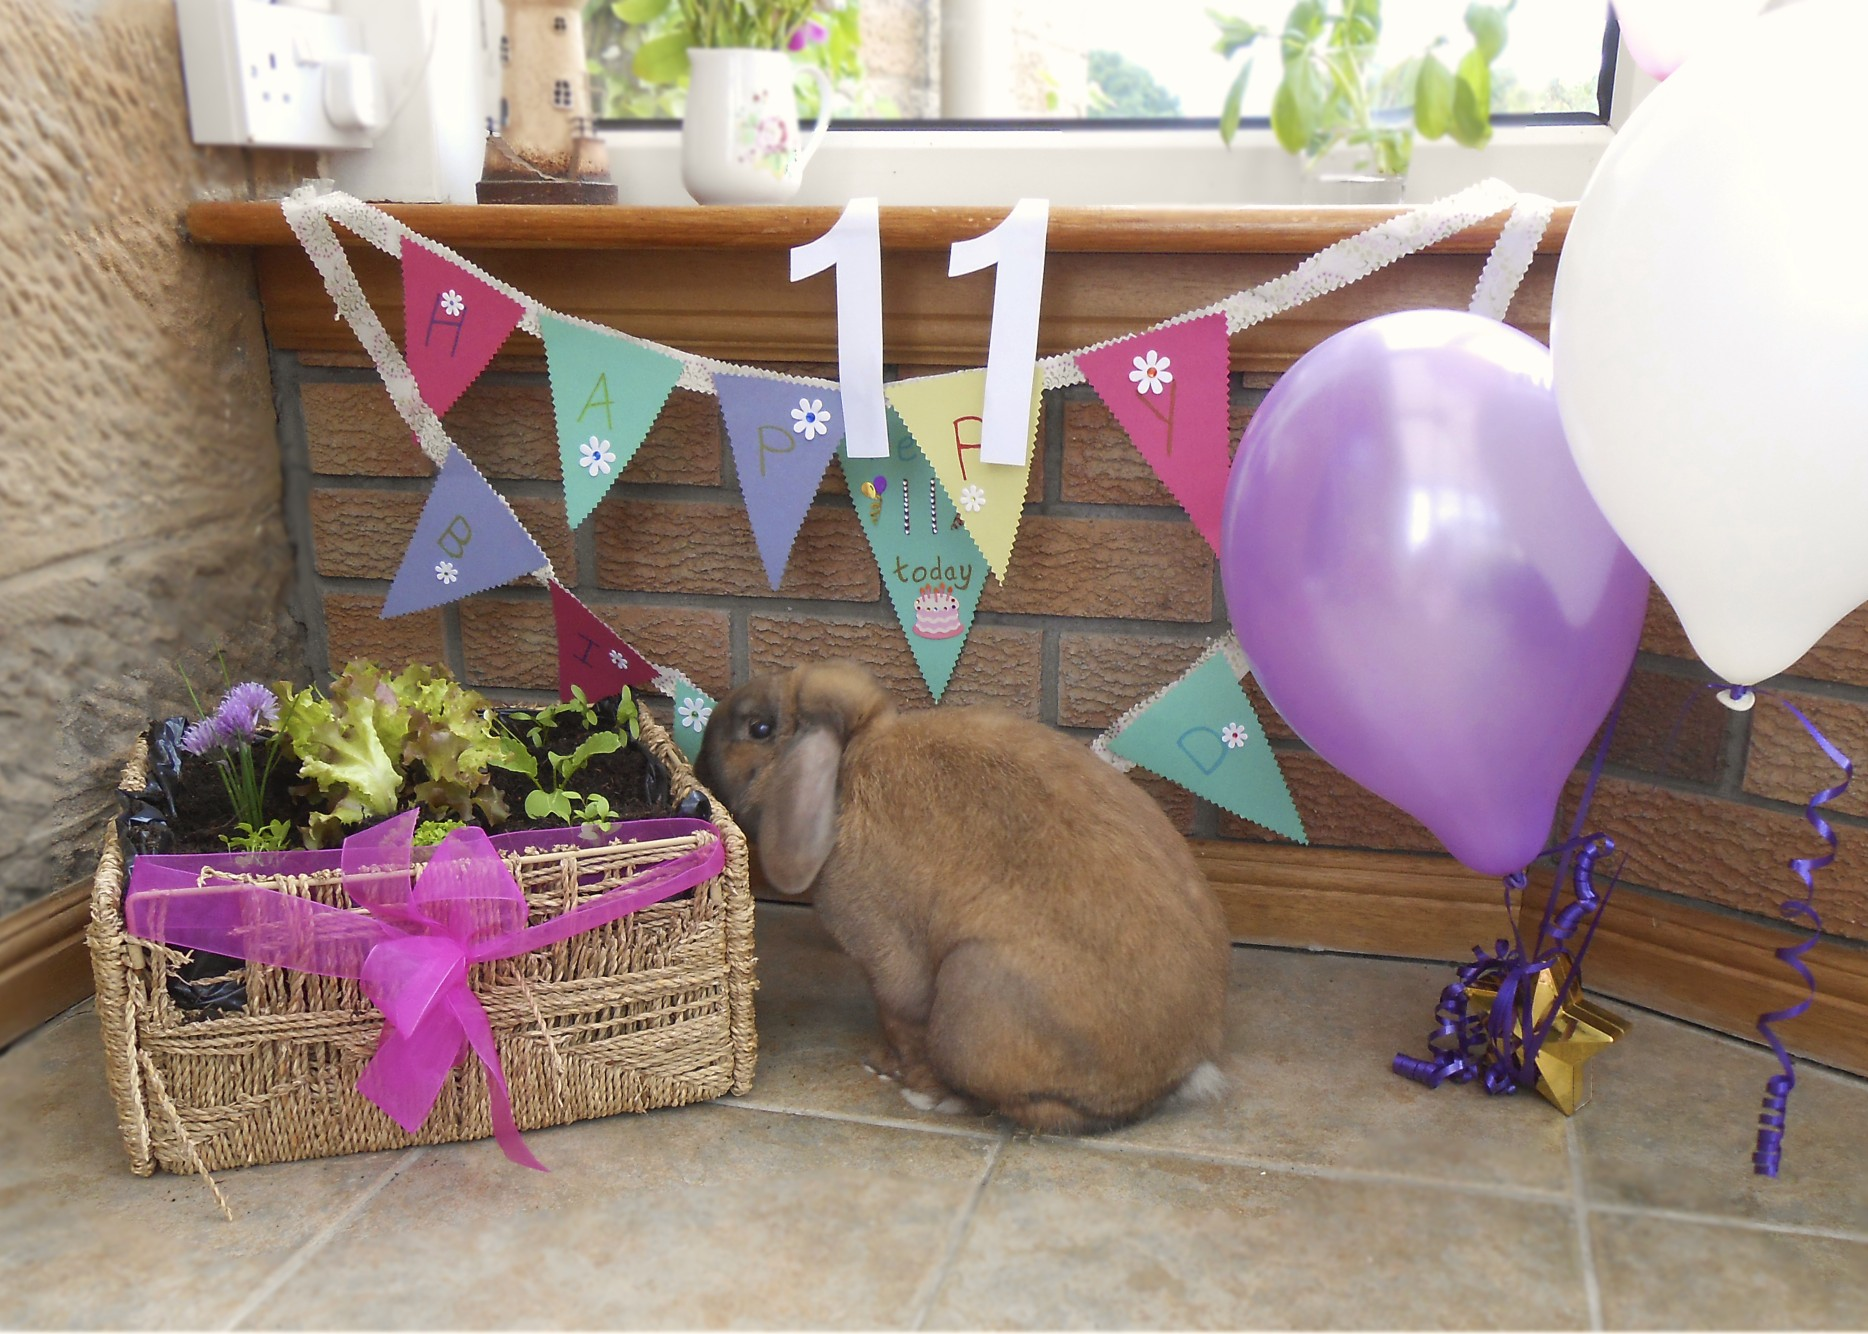 Bunny Celebrates His Eleventh Birthday with a Garden Planted in His Favorite Chewable Basket